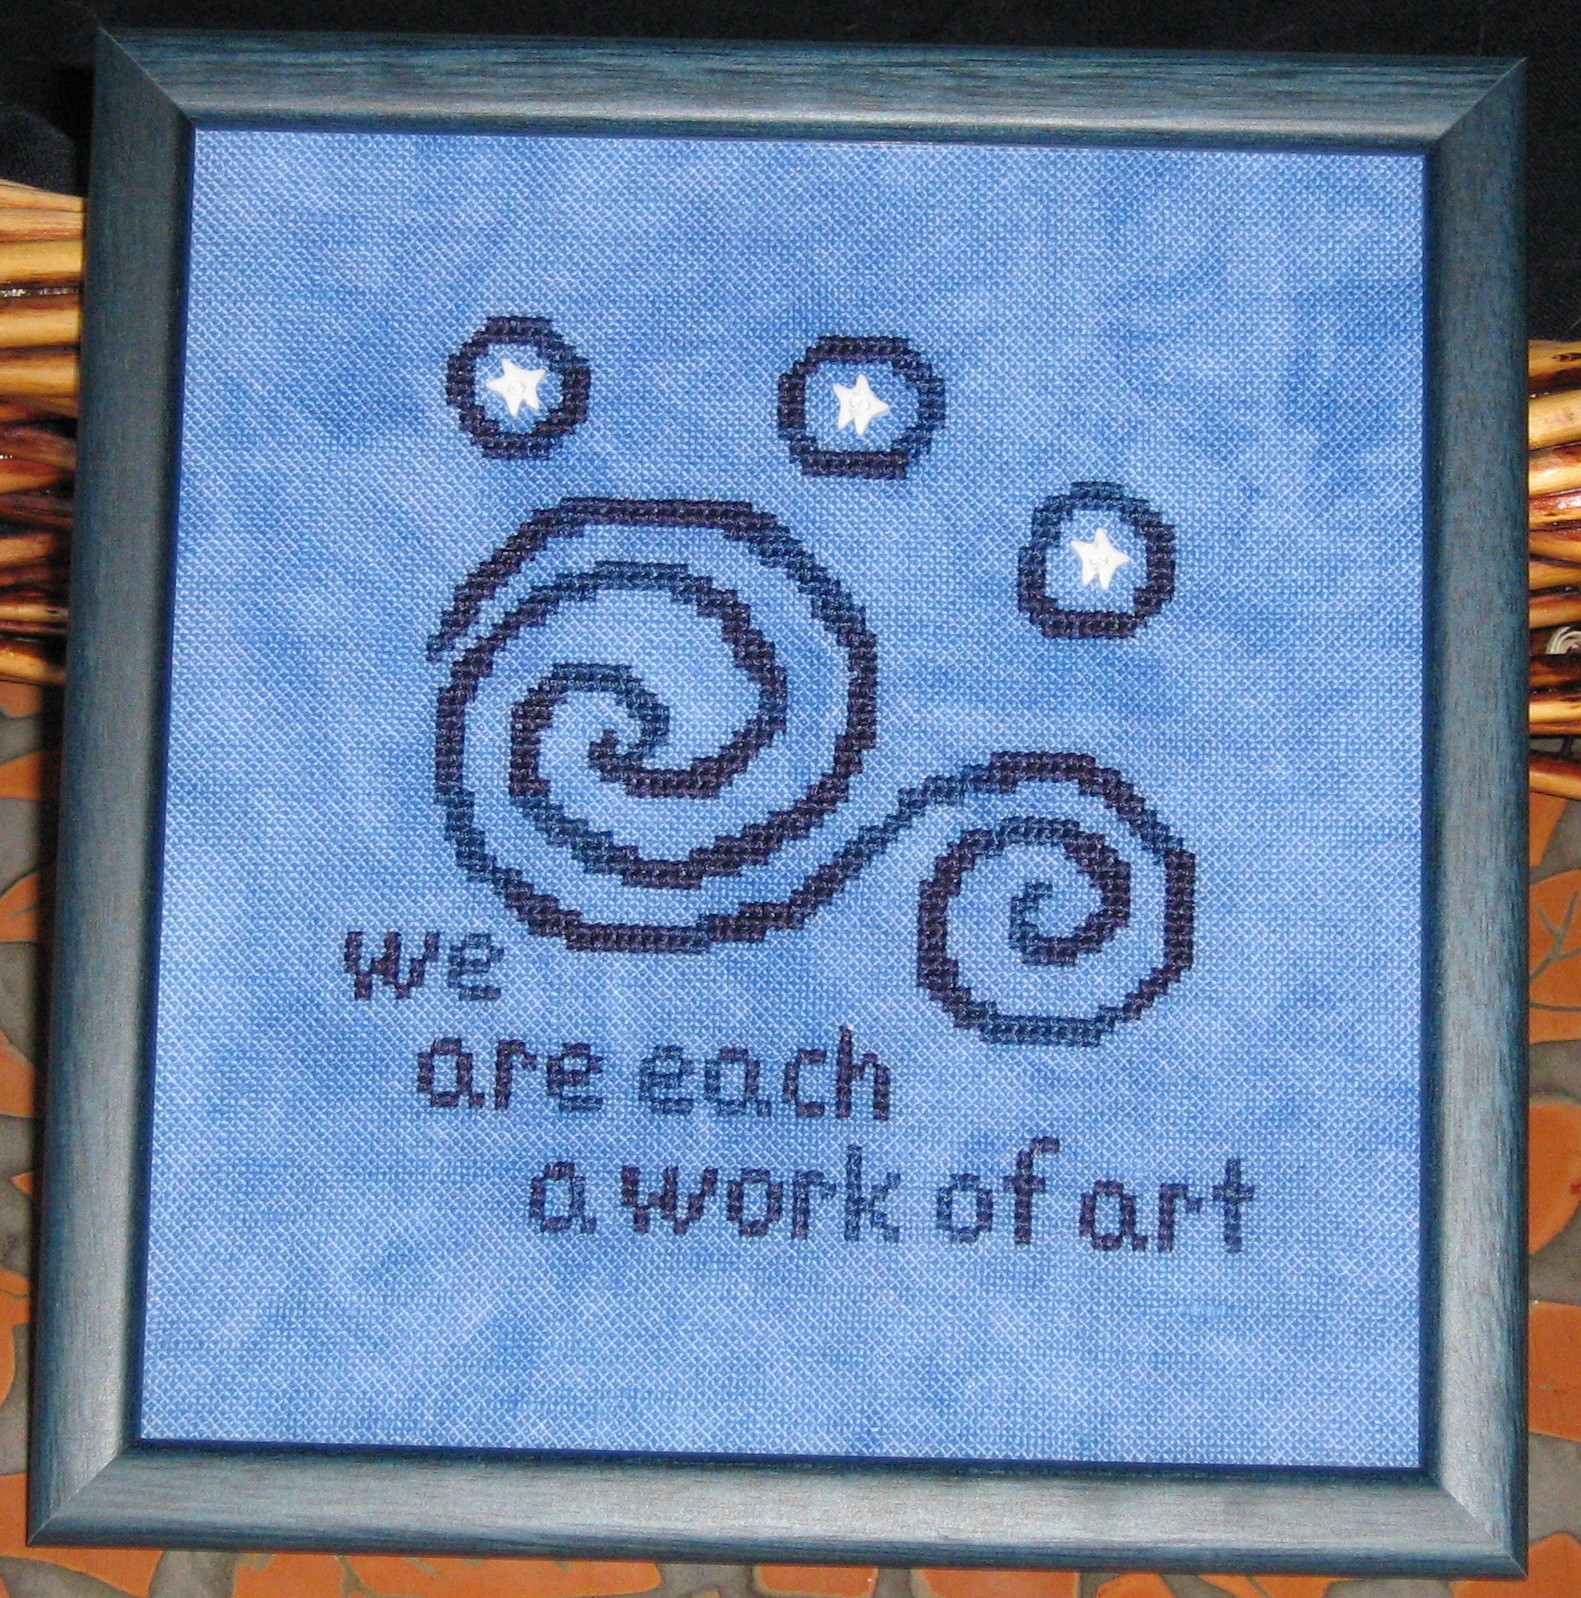 Moonflower Designs - We are Each a Work of Art. Picture This Plus Stellar.